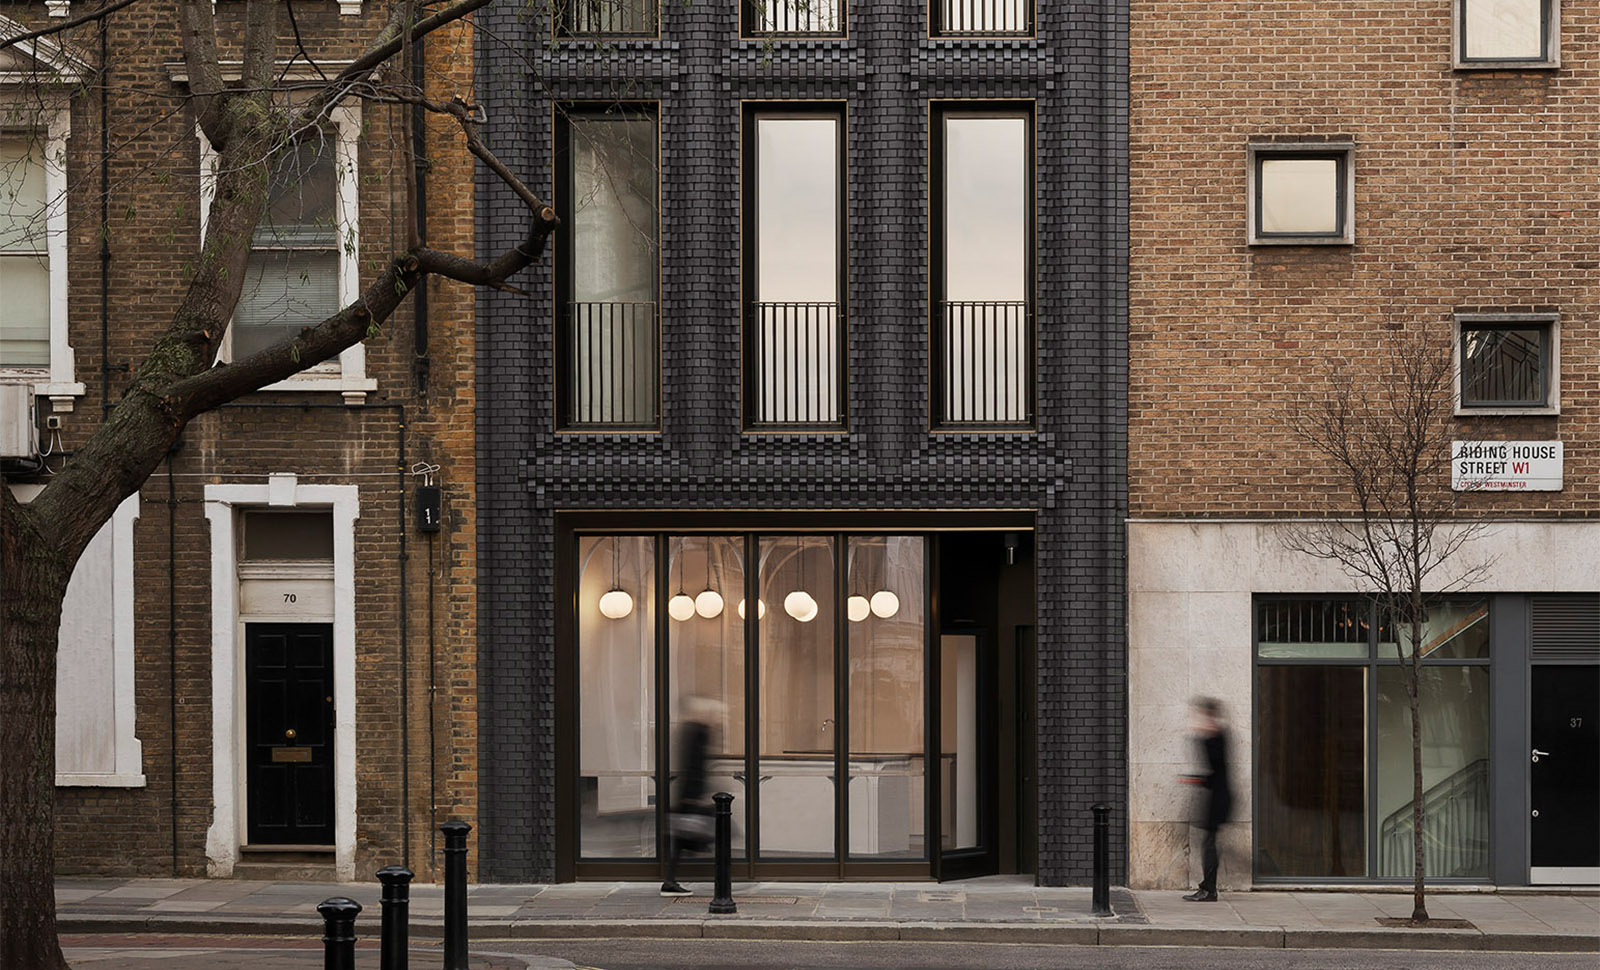 The Interlock, Riding House Street, London